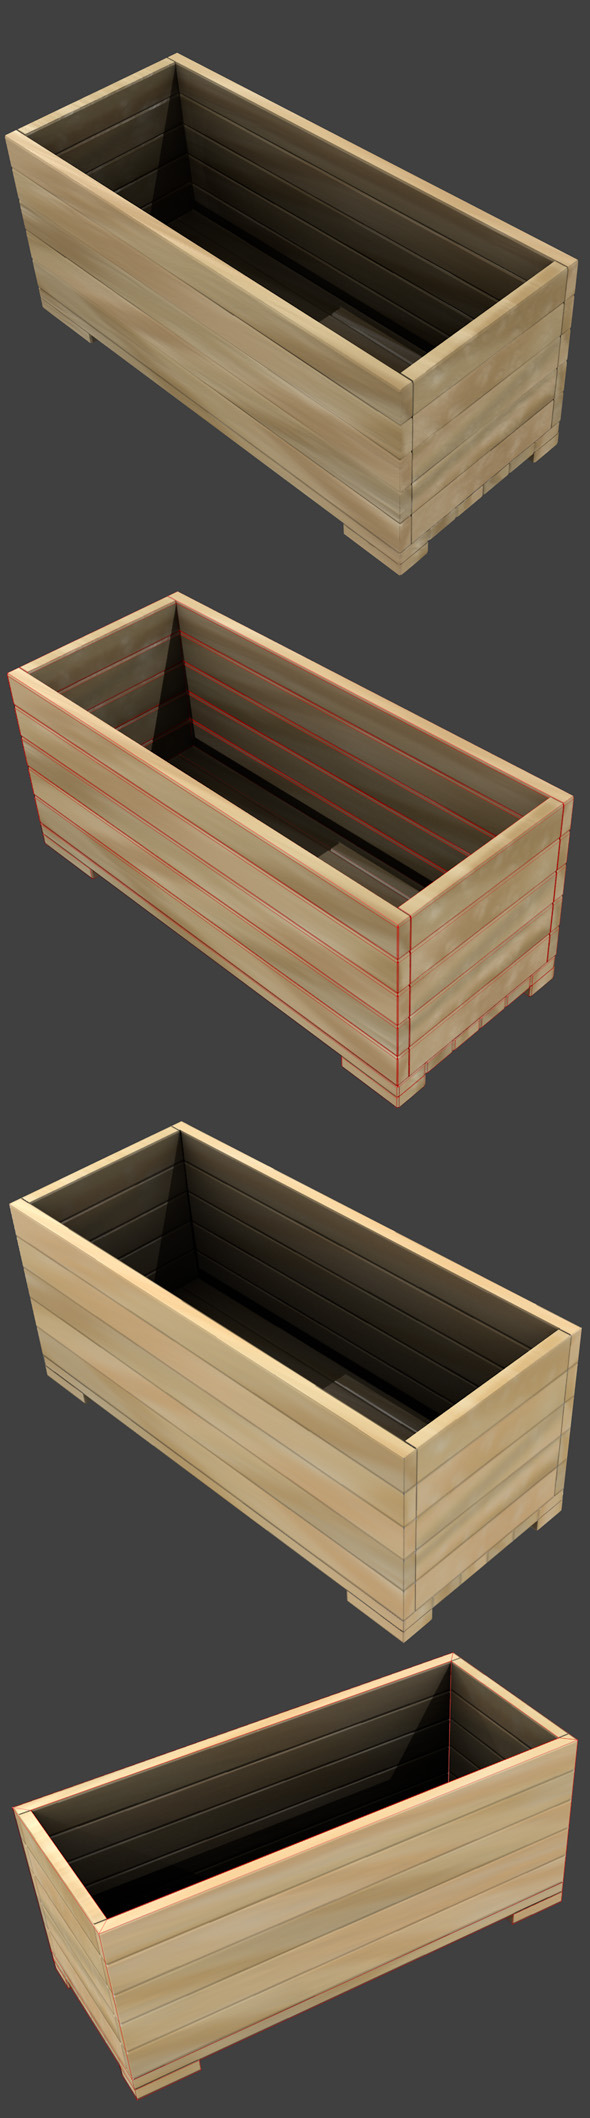 3DOcean Wooden Box Flower Pot High and Low-poly 262915